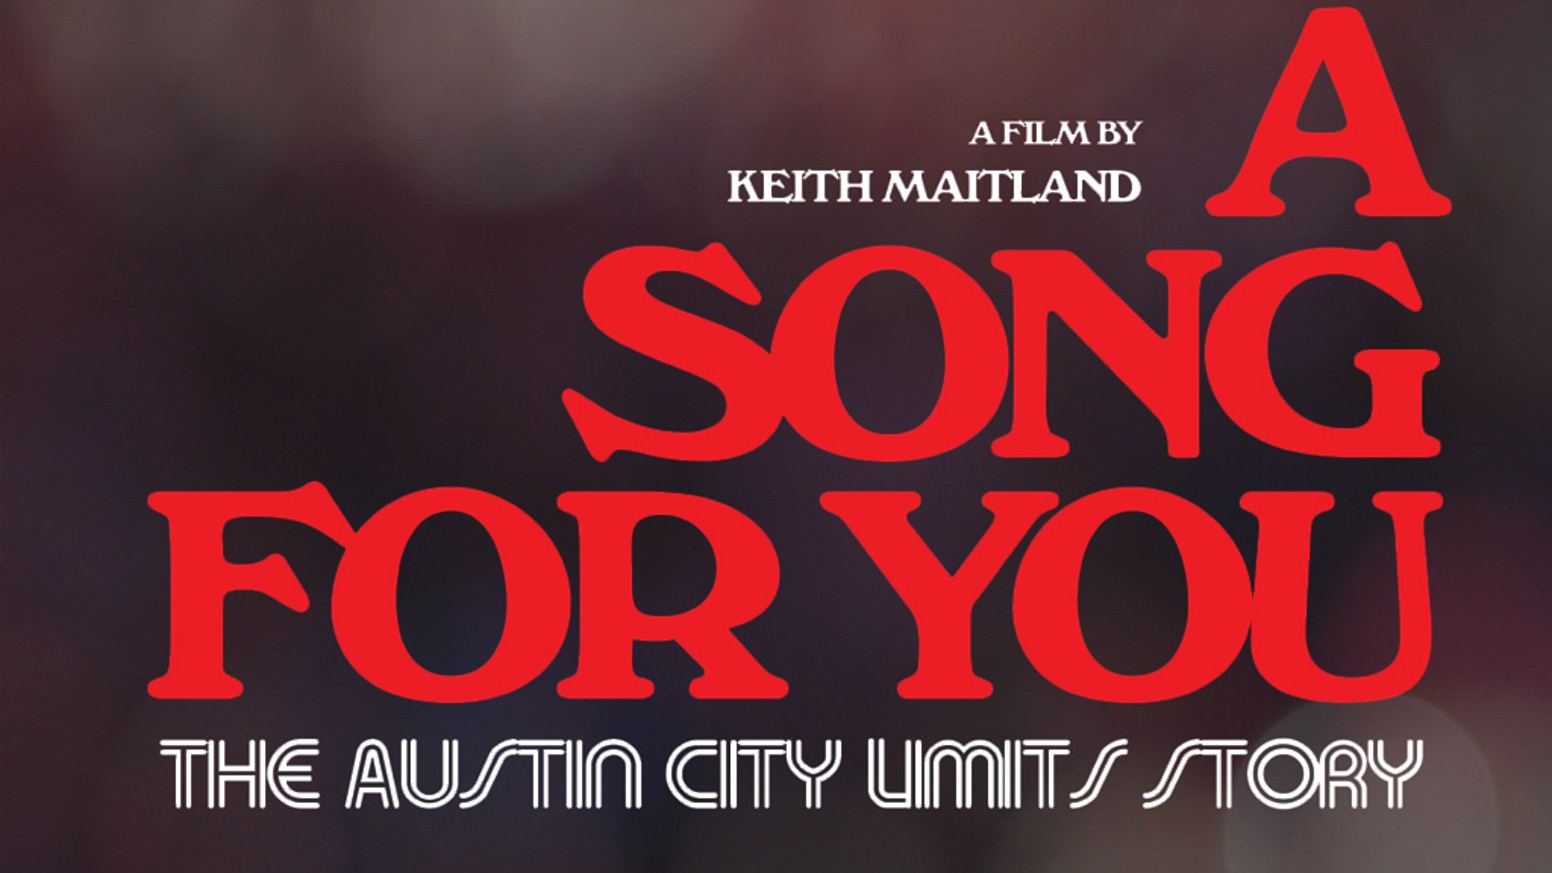 A Song For You The Austin City Limits Story By Keith